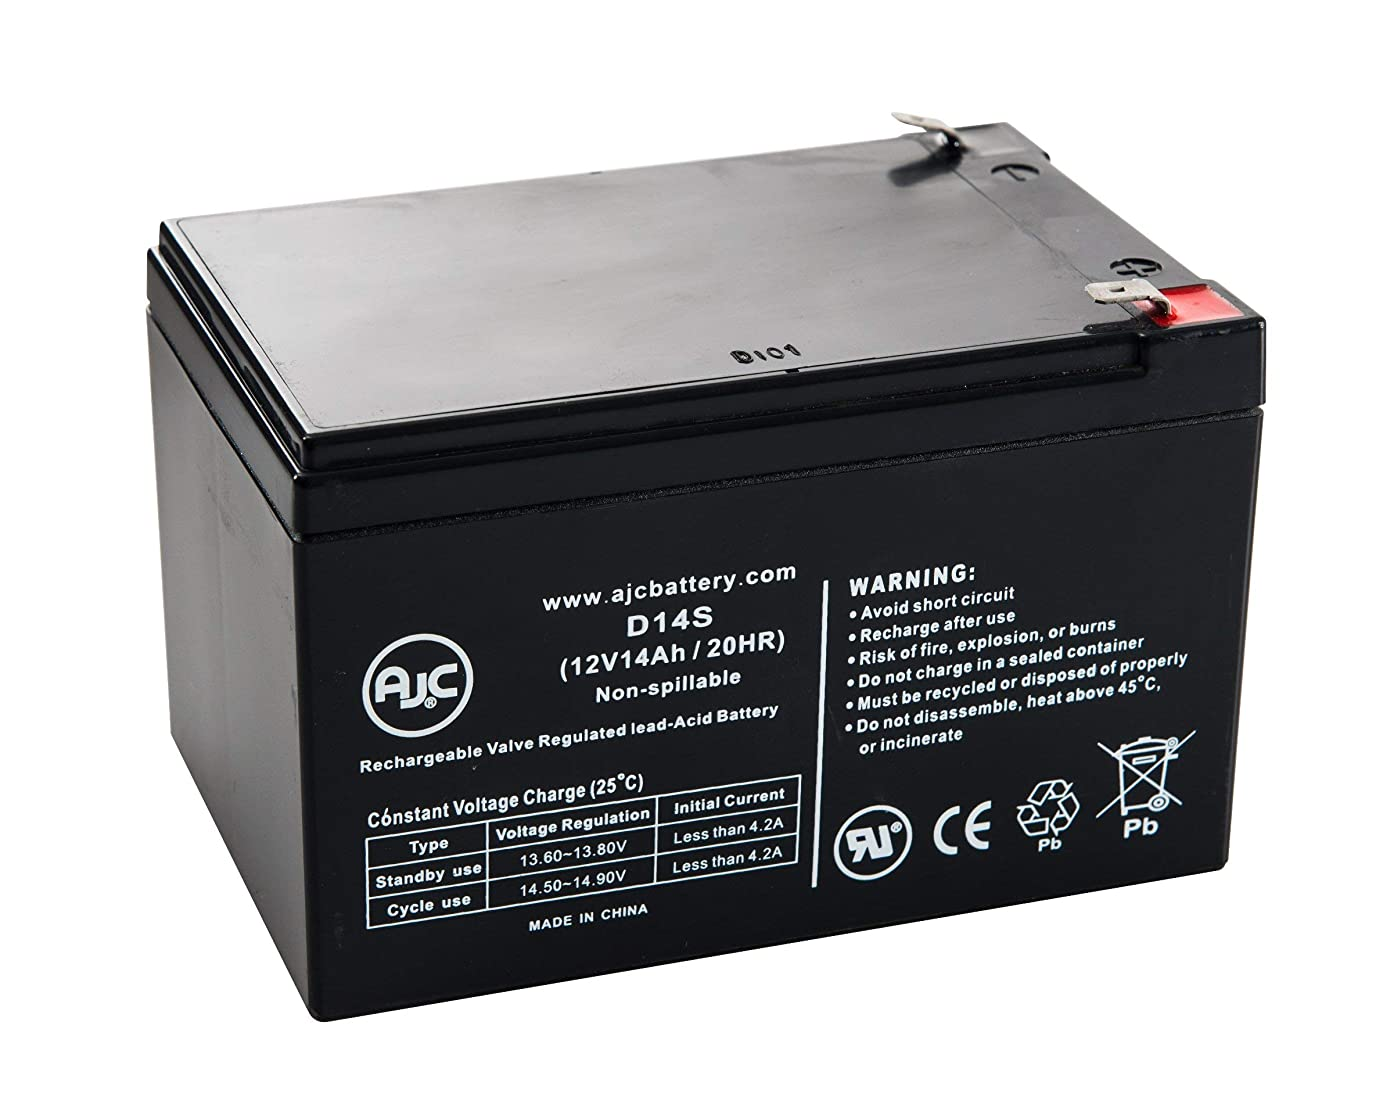 WKDC12-14F2 12V 14Ah Sealed Lead Acid Battery - This is an AJC Brand Replacement